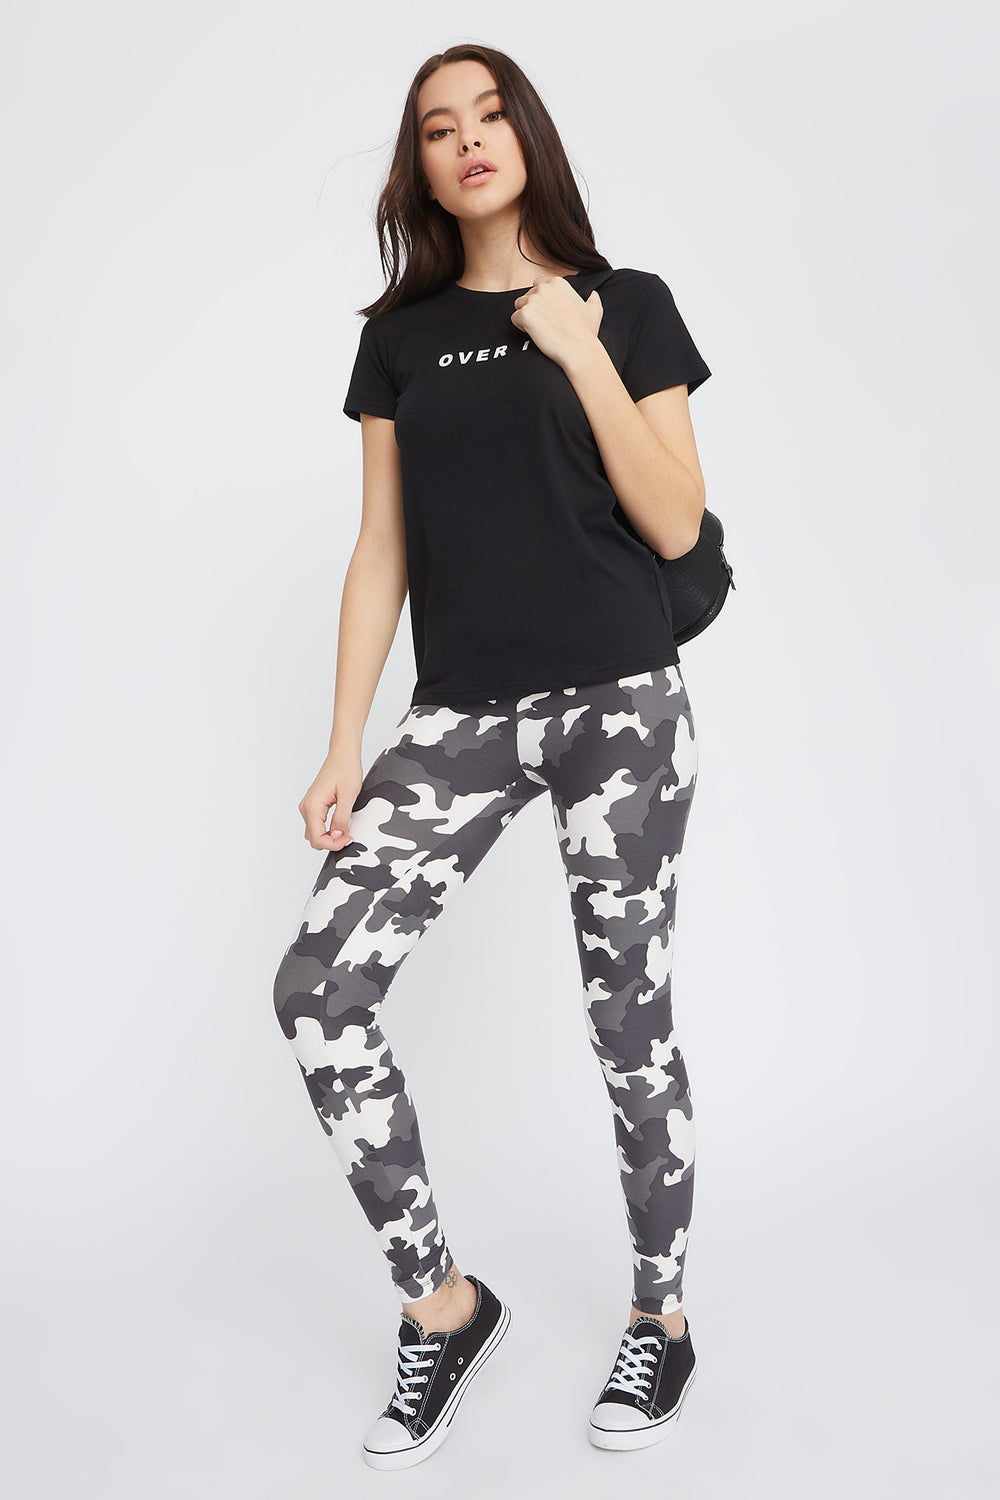 Camo Printed Basic Soft Legging Black with White